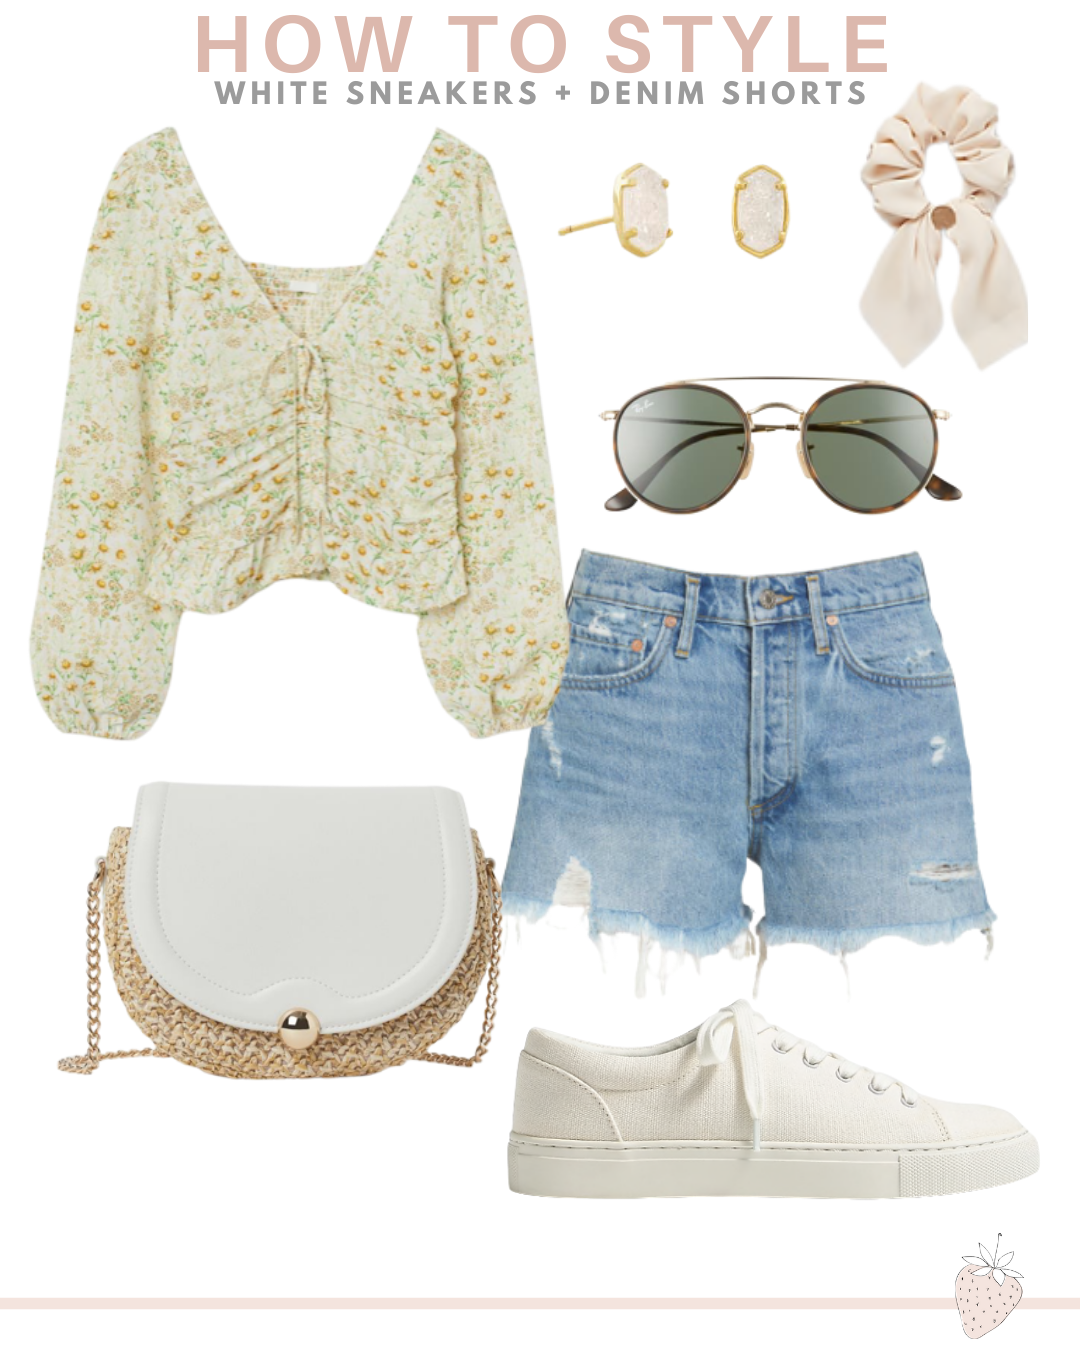 Different Ways To Style White Sneakers | denim shorts and sneakers outfit